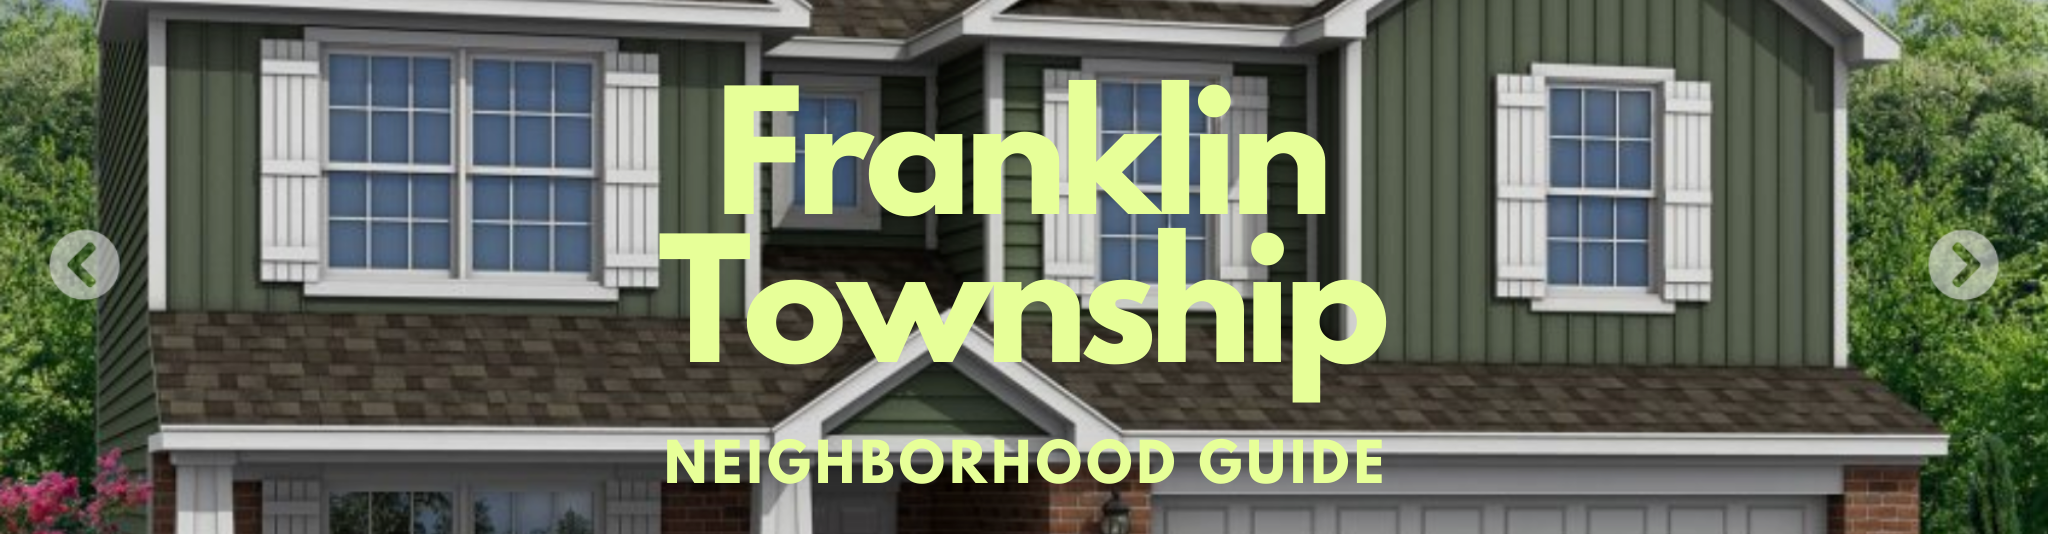 Franklin Township Marion County Indianapolis Indiana Real Estate Neighborhood guide